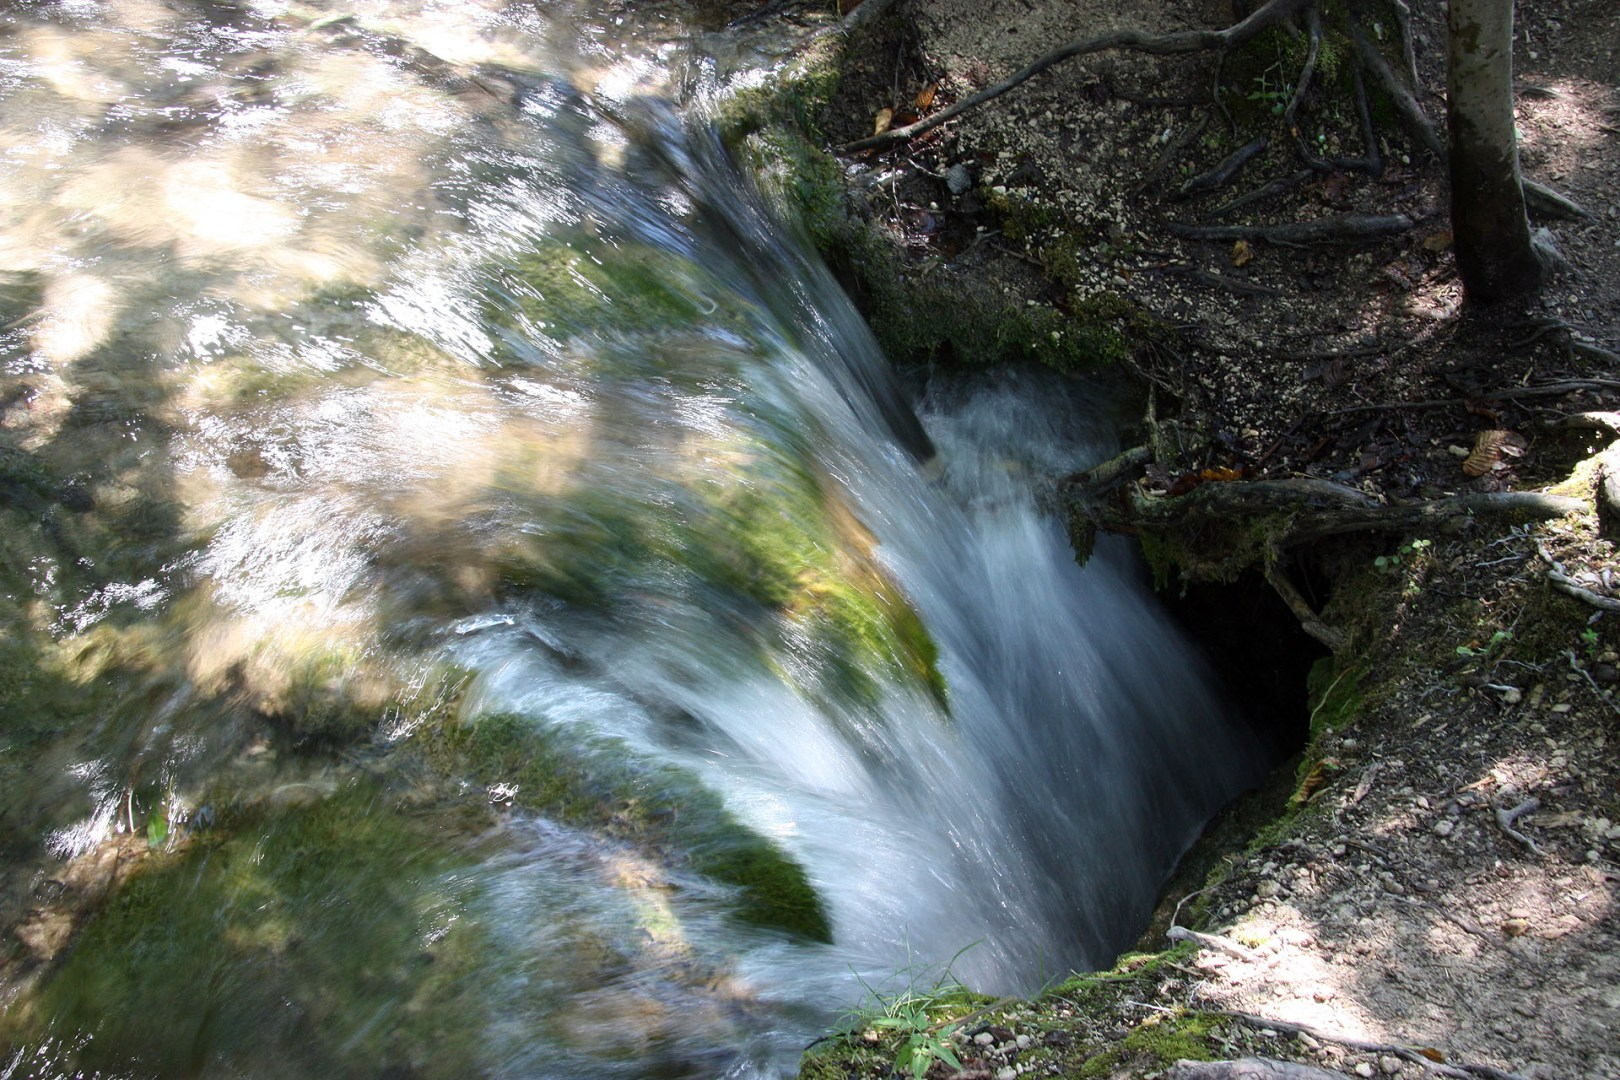 Water flowing down a hole in the ground